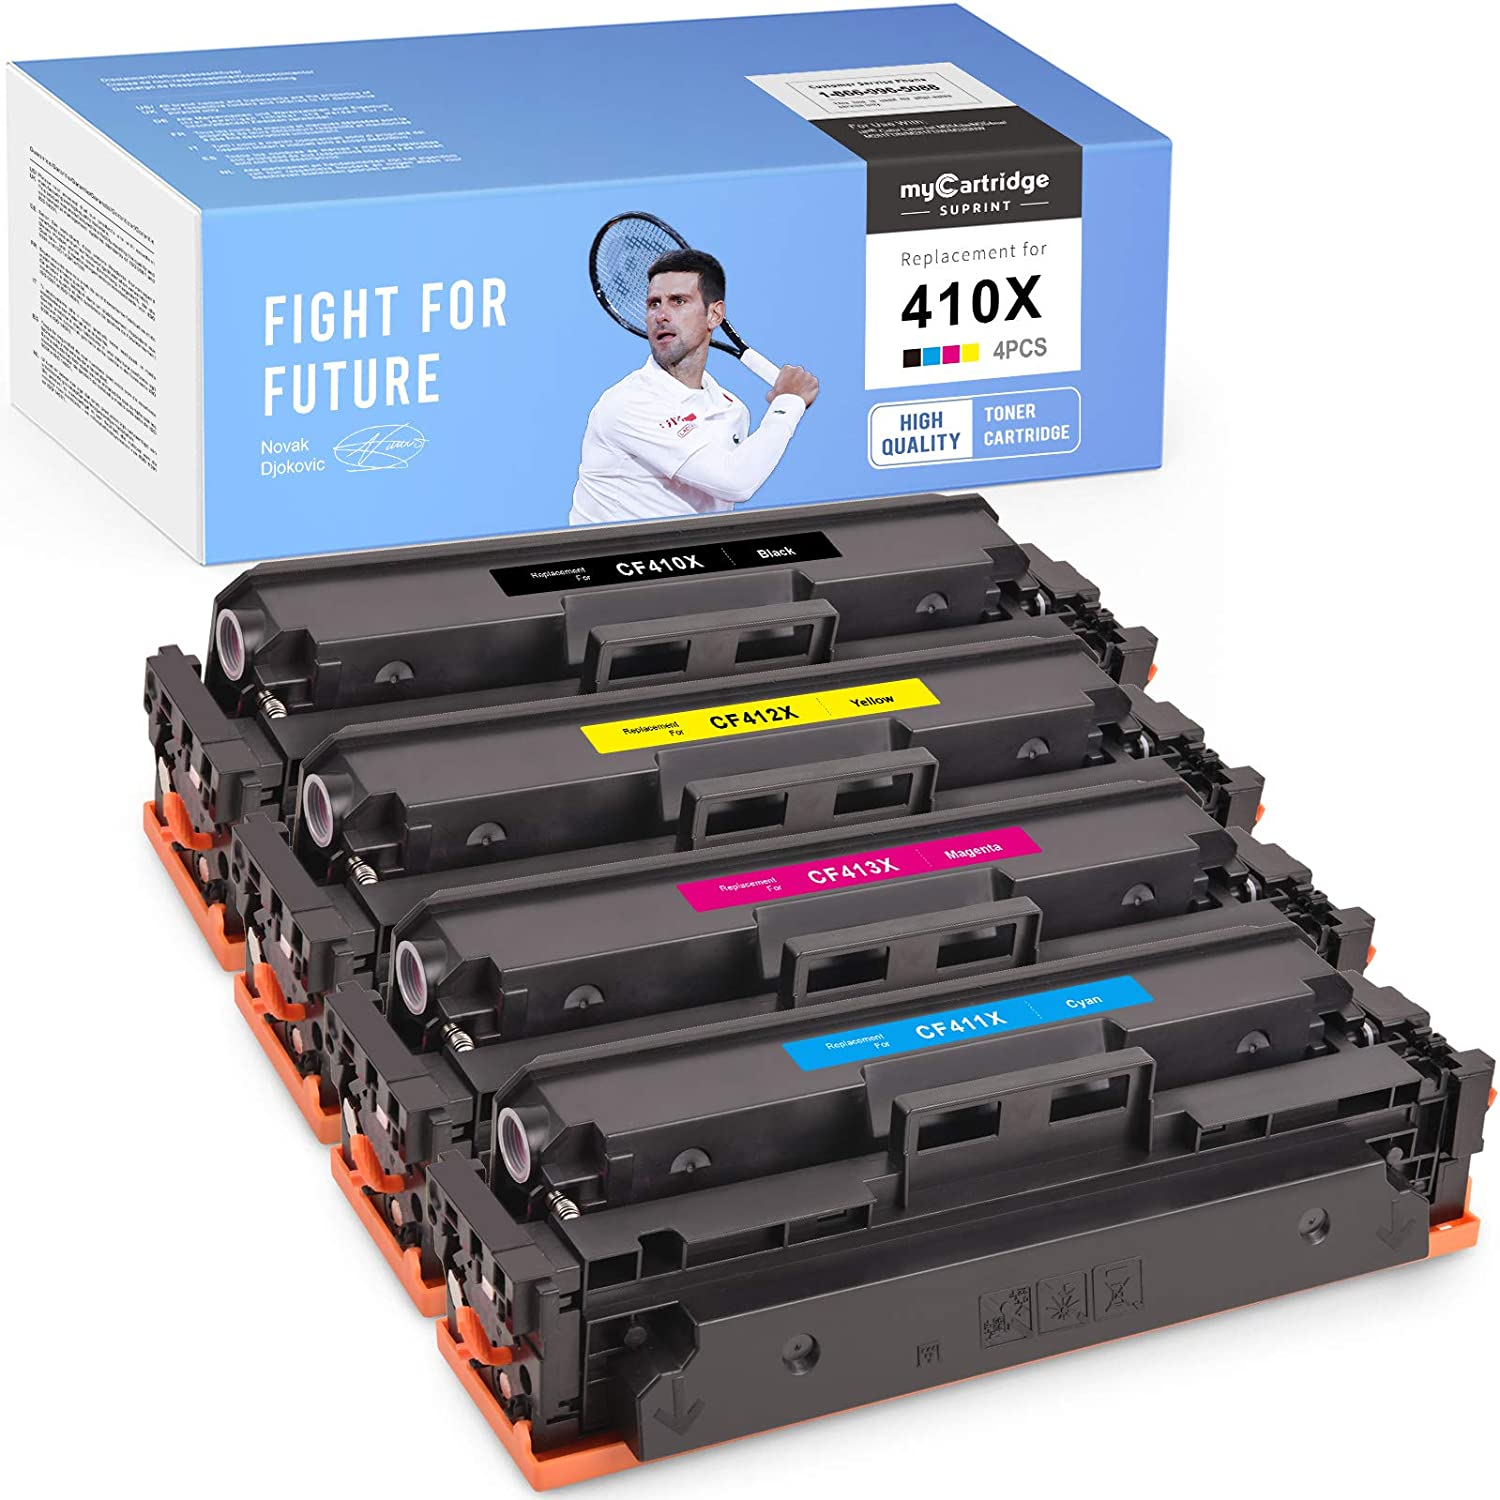 myCartridge SUPRINT Compatible Toner Cartridge Replacement for HP 410X CF410X use with Laserjet Pro MFP M452dw M452nw M452dn M477fdw M477fnw M477fdn M377dw (Black Cyan Magenta Yellow, 4-Pack)